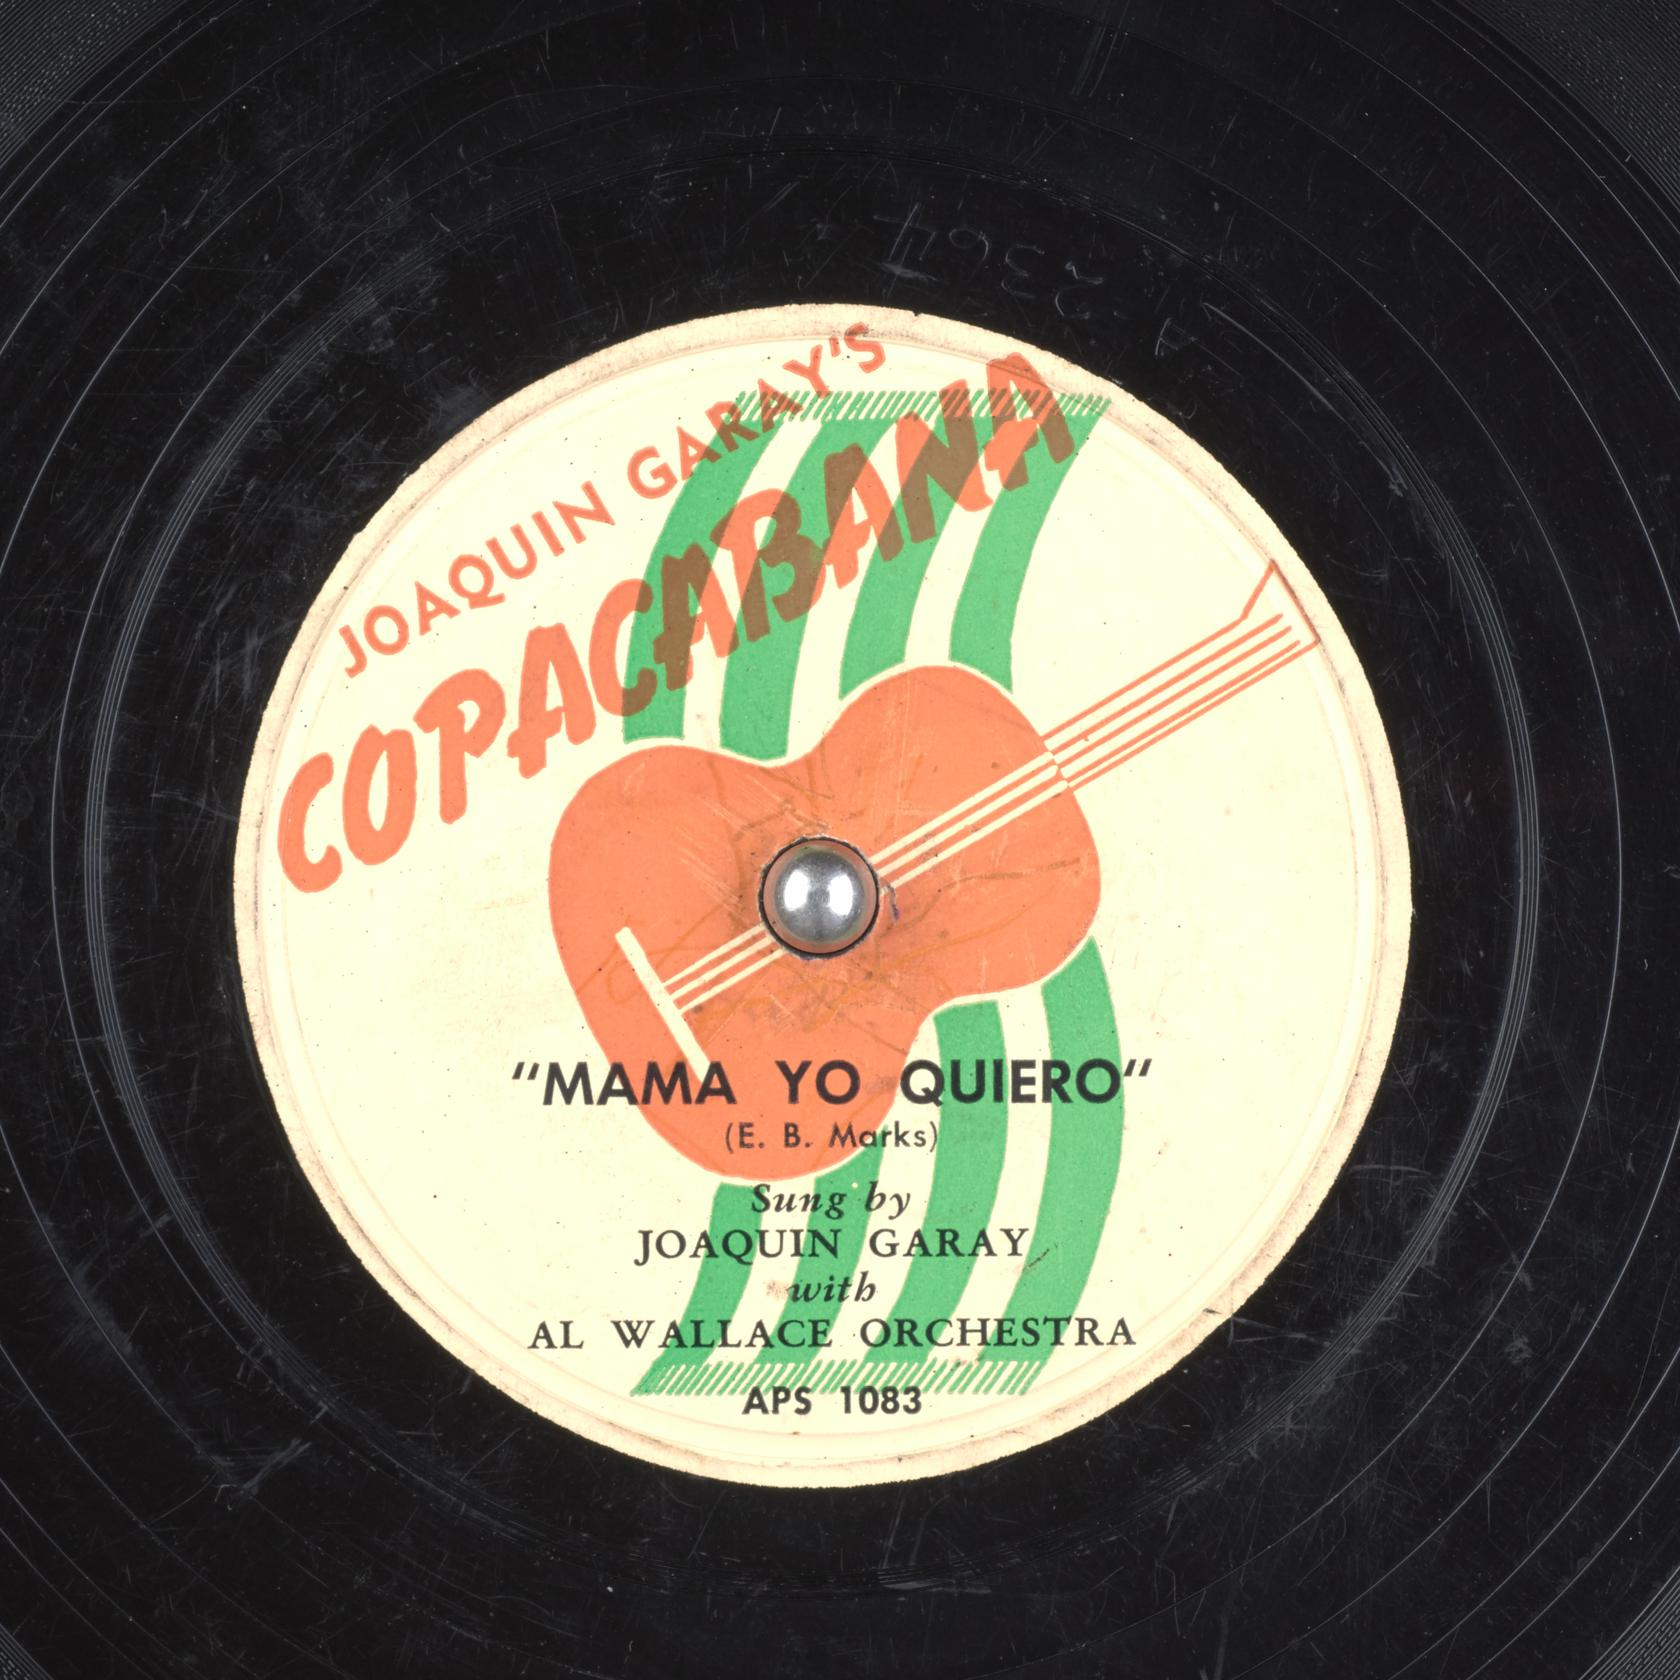 78_mama-yo-quiero_joaquin-garay-al-wallace-orchestra-e-b-marks_gbia0034720a